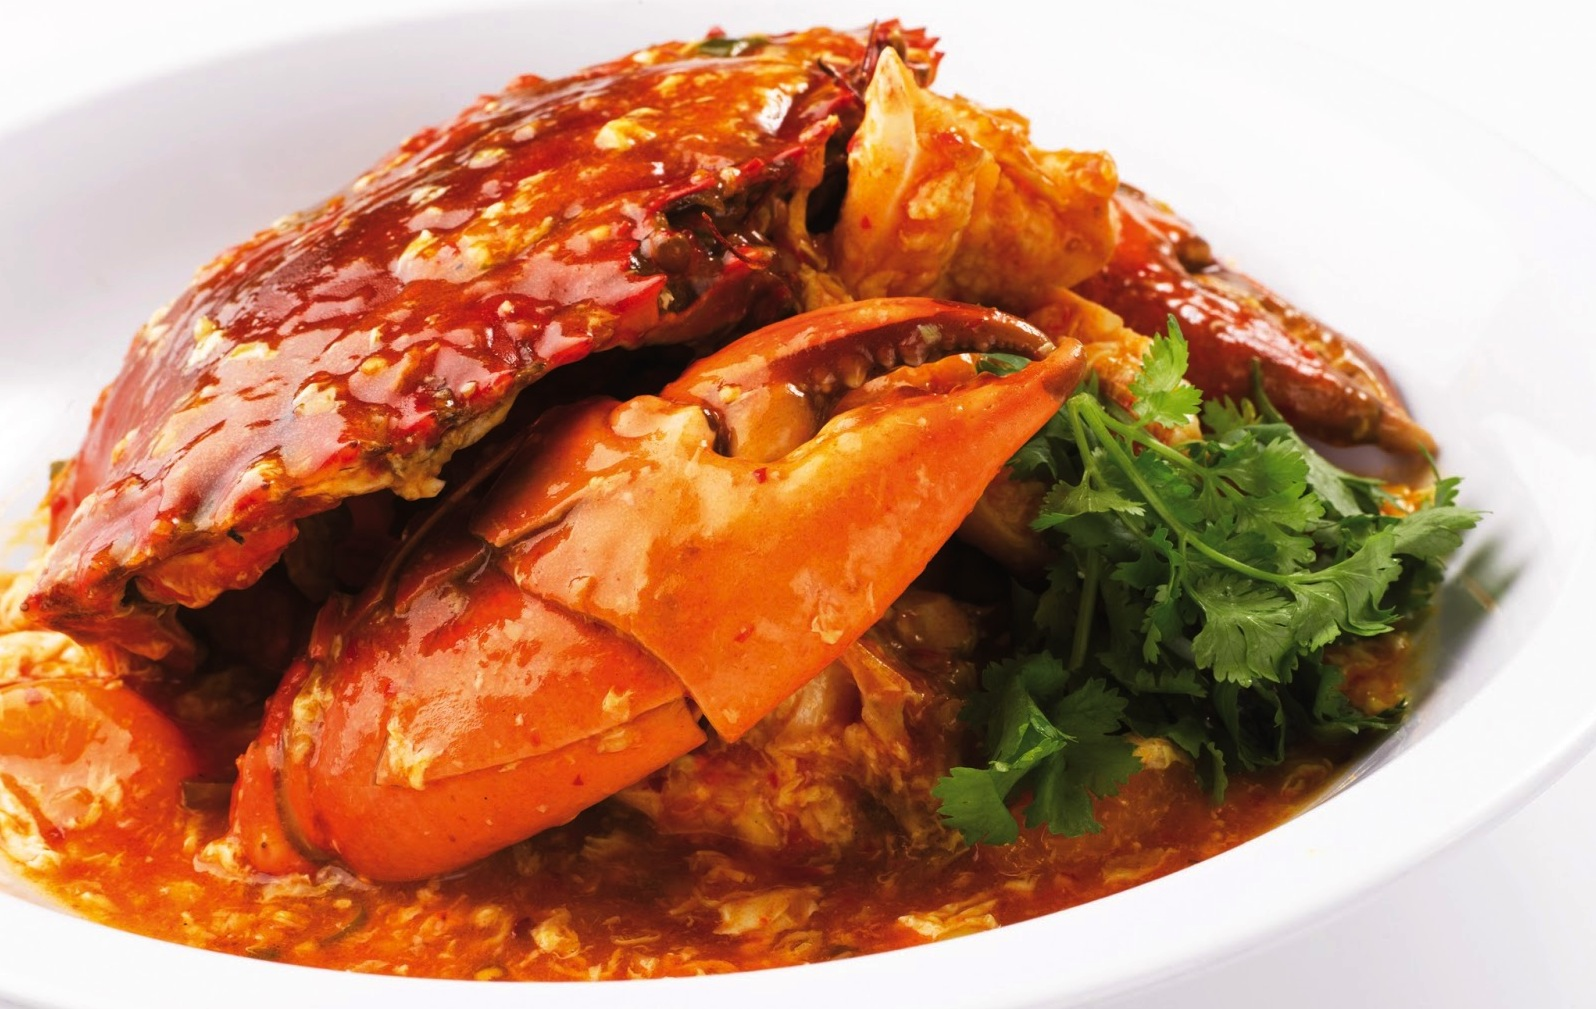 At Kelong they prepare Singapore chilli crab in the traditional way.